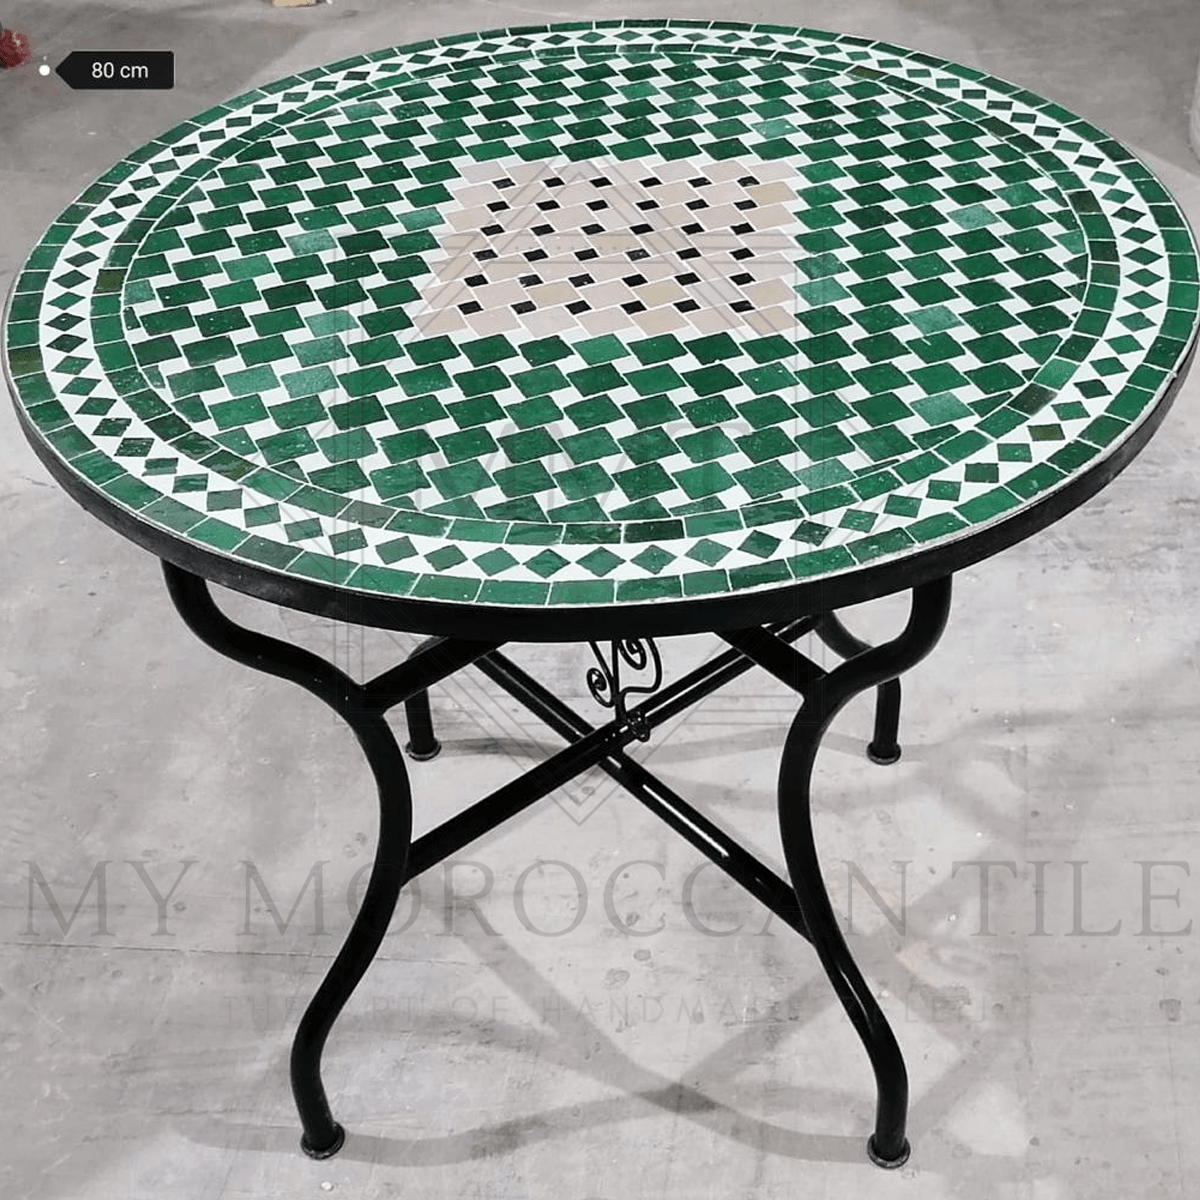 Handmade Moroccan Mosaic Table 2111-02